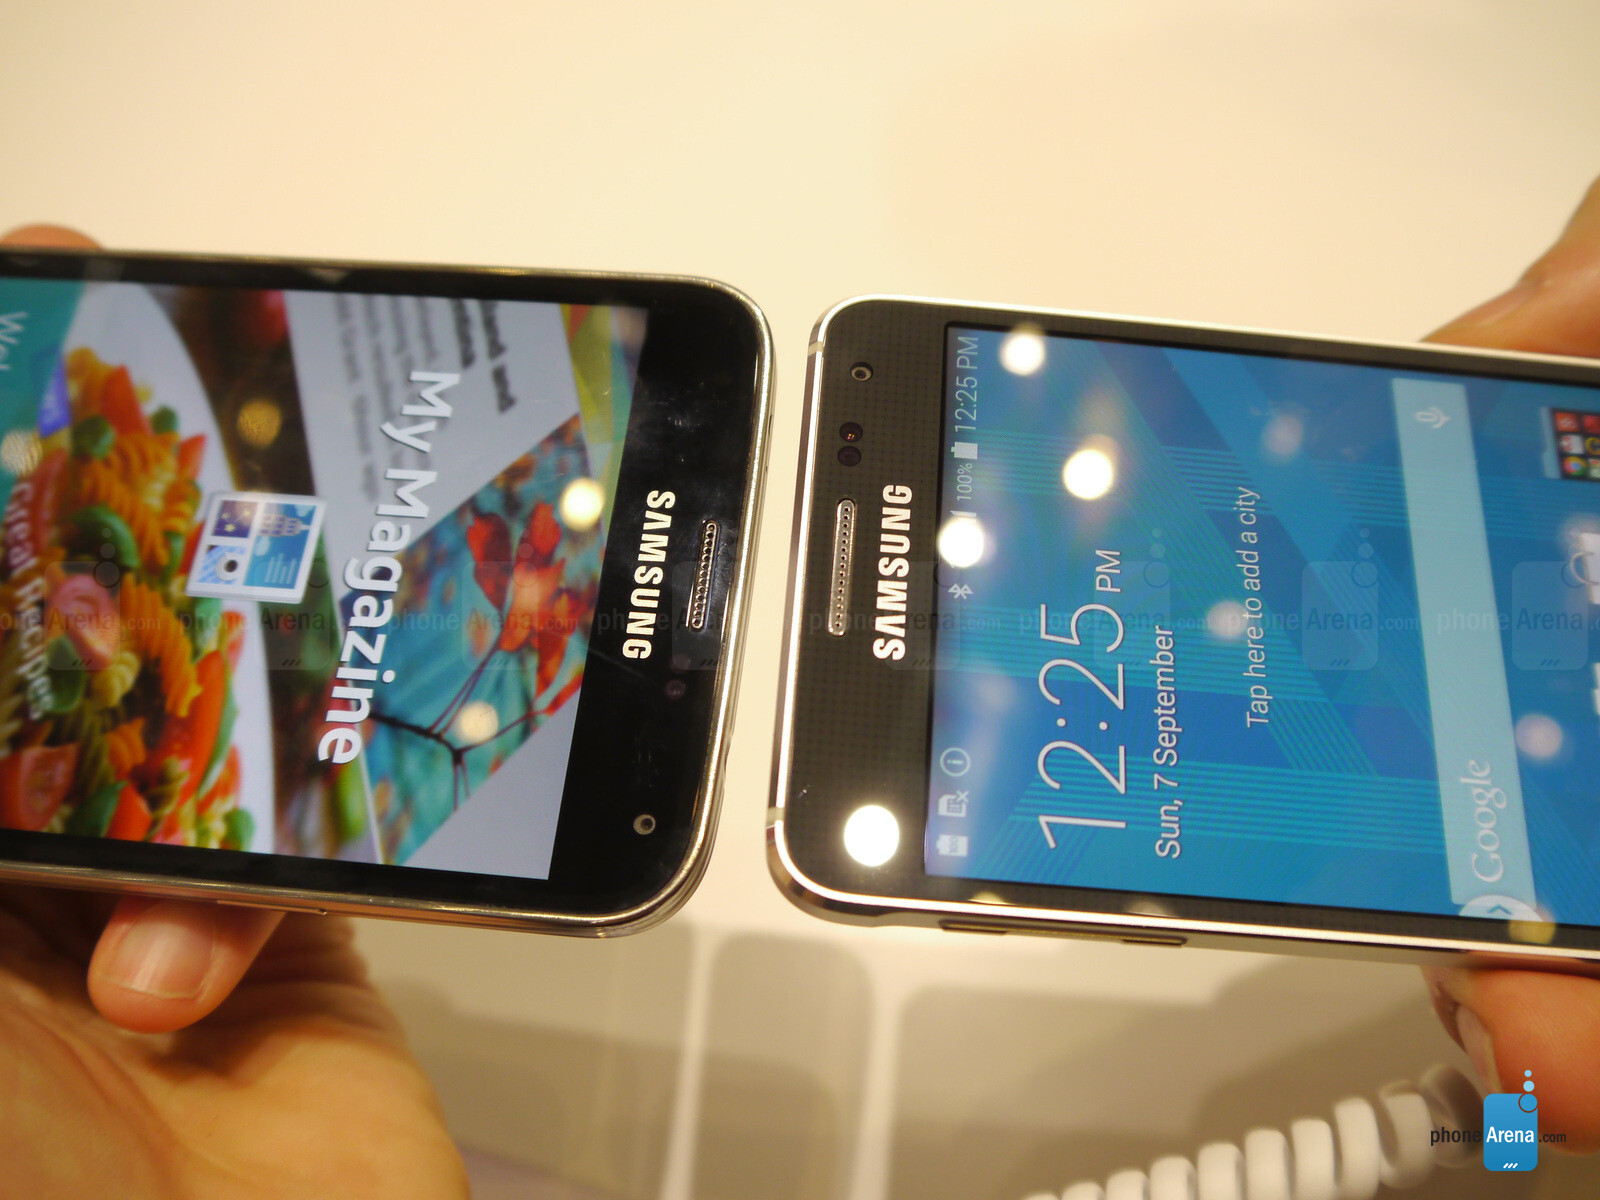 Galaxy Alpha Vs S5 samsung galaxy alpha vs samsung galaxy s5: first look